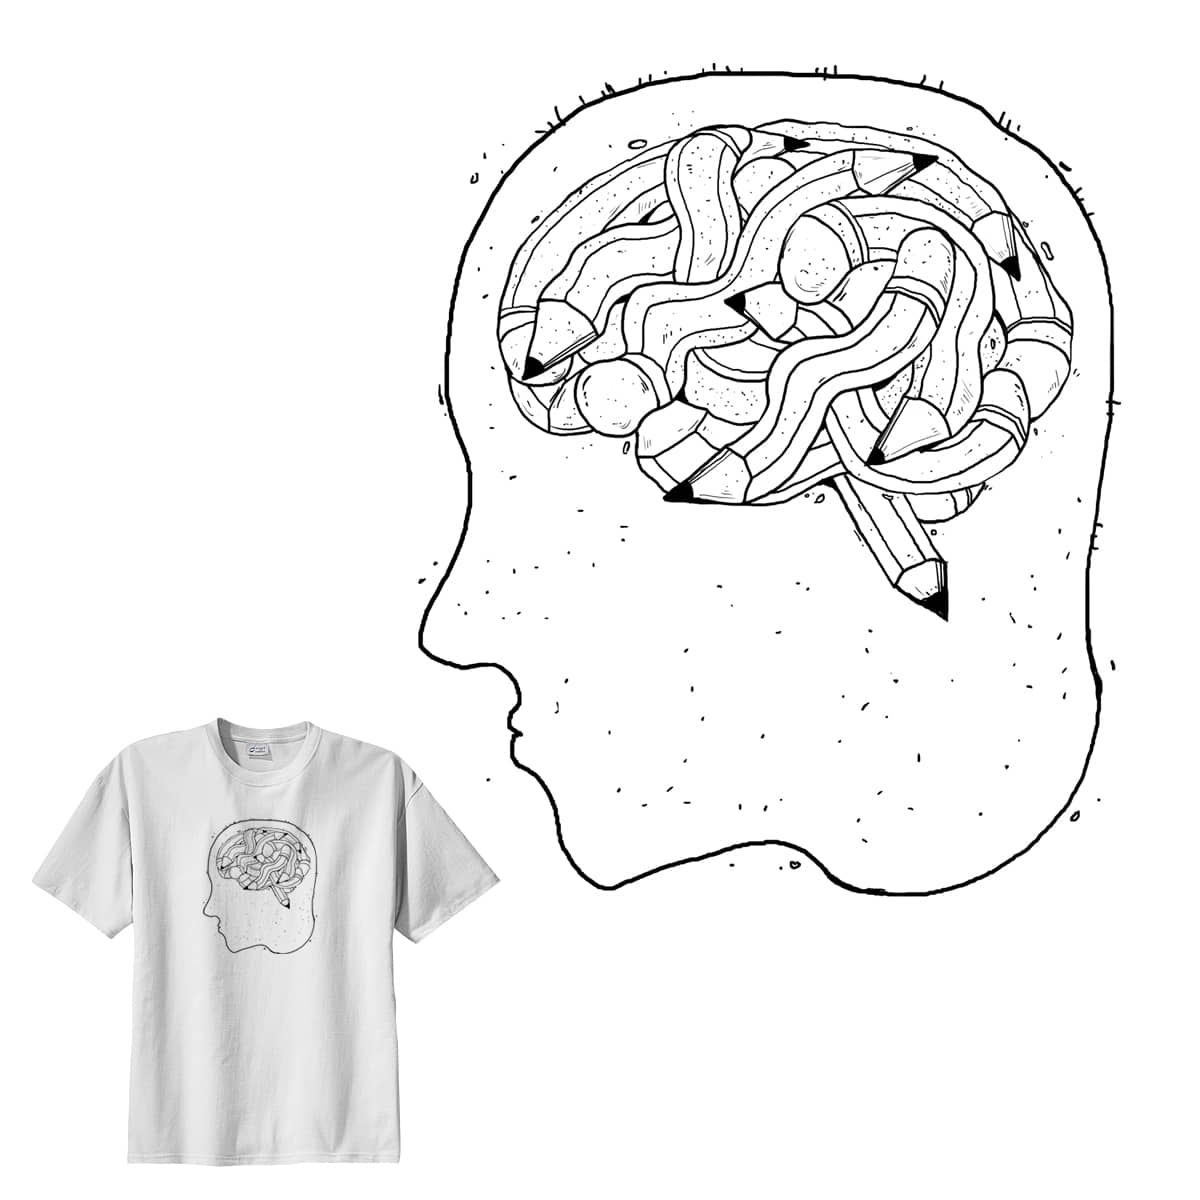 the brain of sketch artist by ipungkurniawan on Threadless